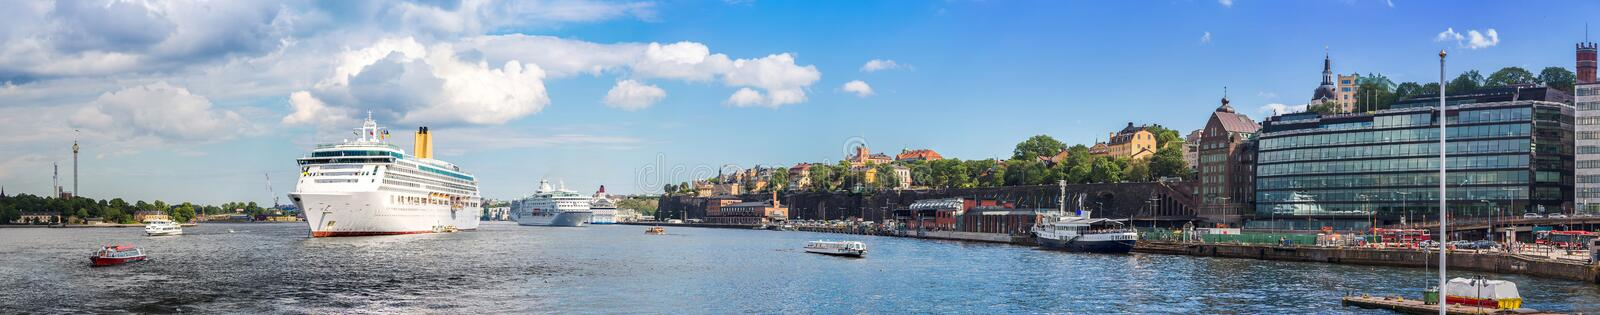 Panorama of Stockholm, Sweden royalty free stock photography